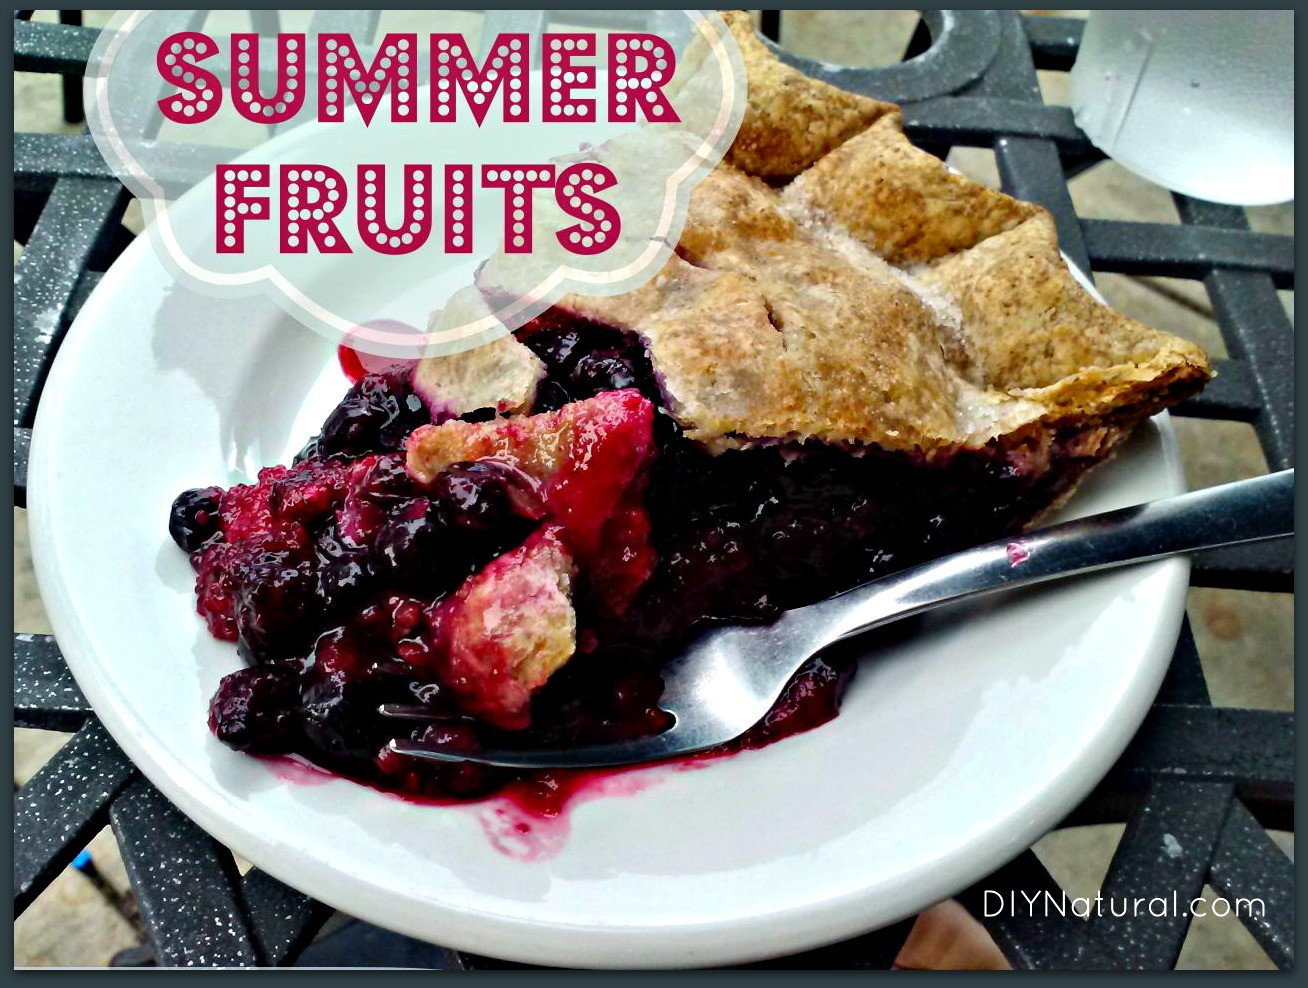 Summer Fruit Recipe That Tastes Great and is Good For You